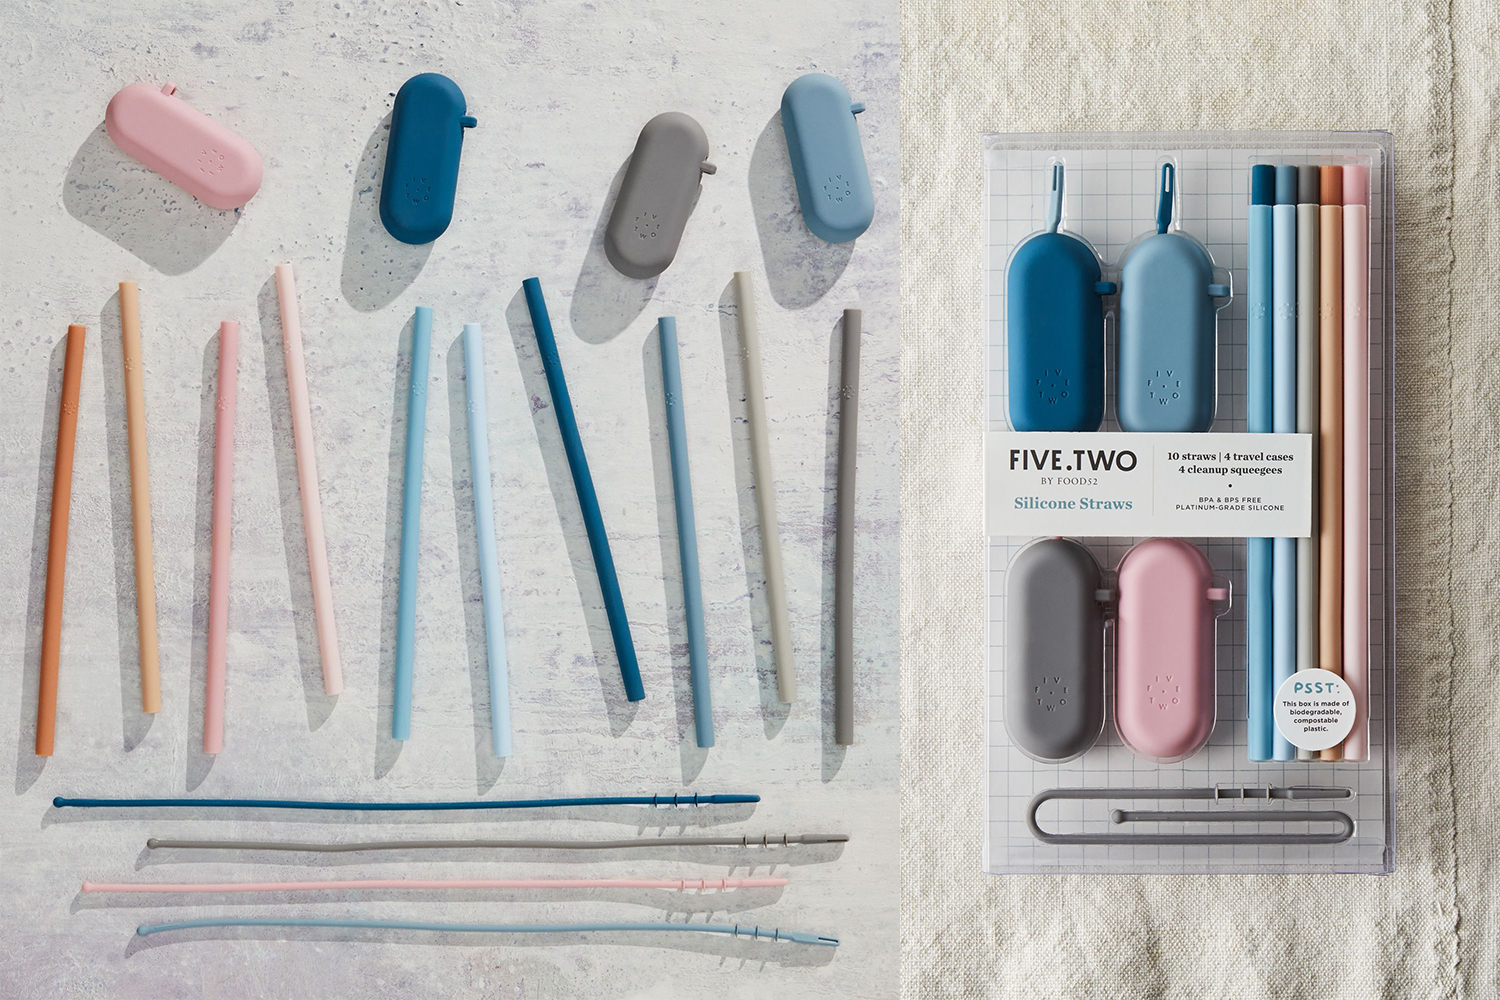 Best reusable silicone straws